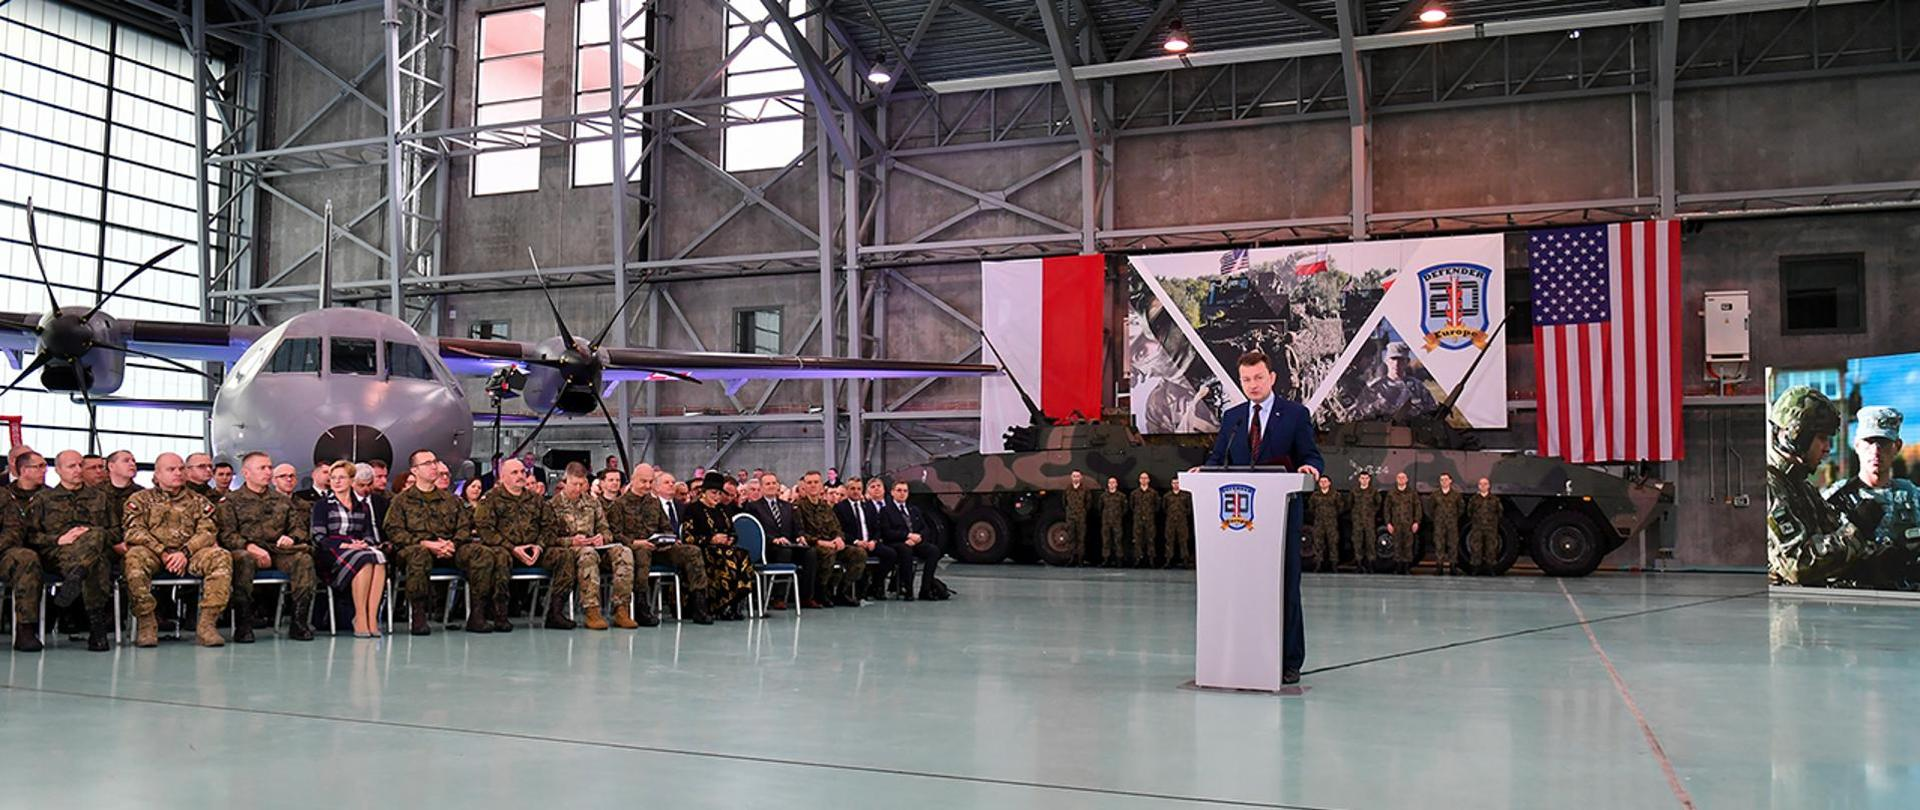 Defence Minister Mariusz Błaszczak gives a speech. Briefing on the Defender Europe 20 exercise, soldiers and armored vehicles in the background. PL and USA flags.